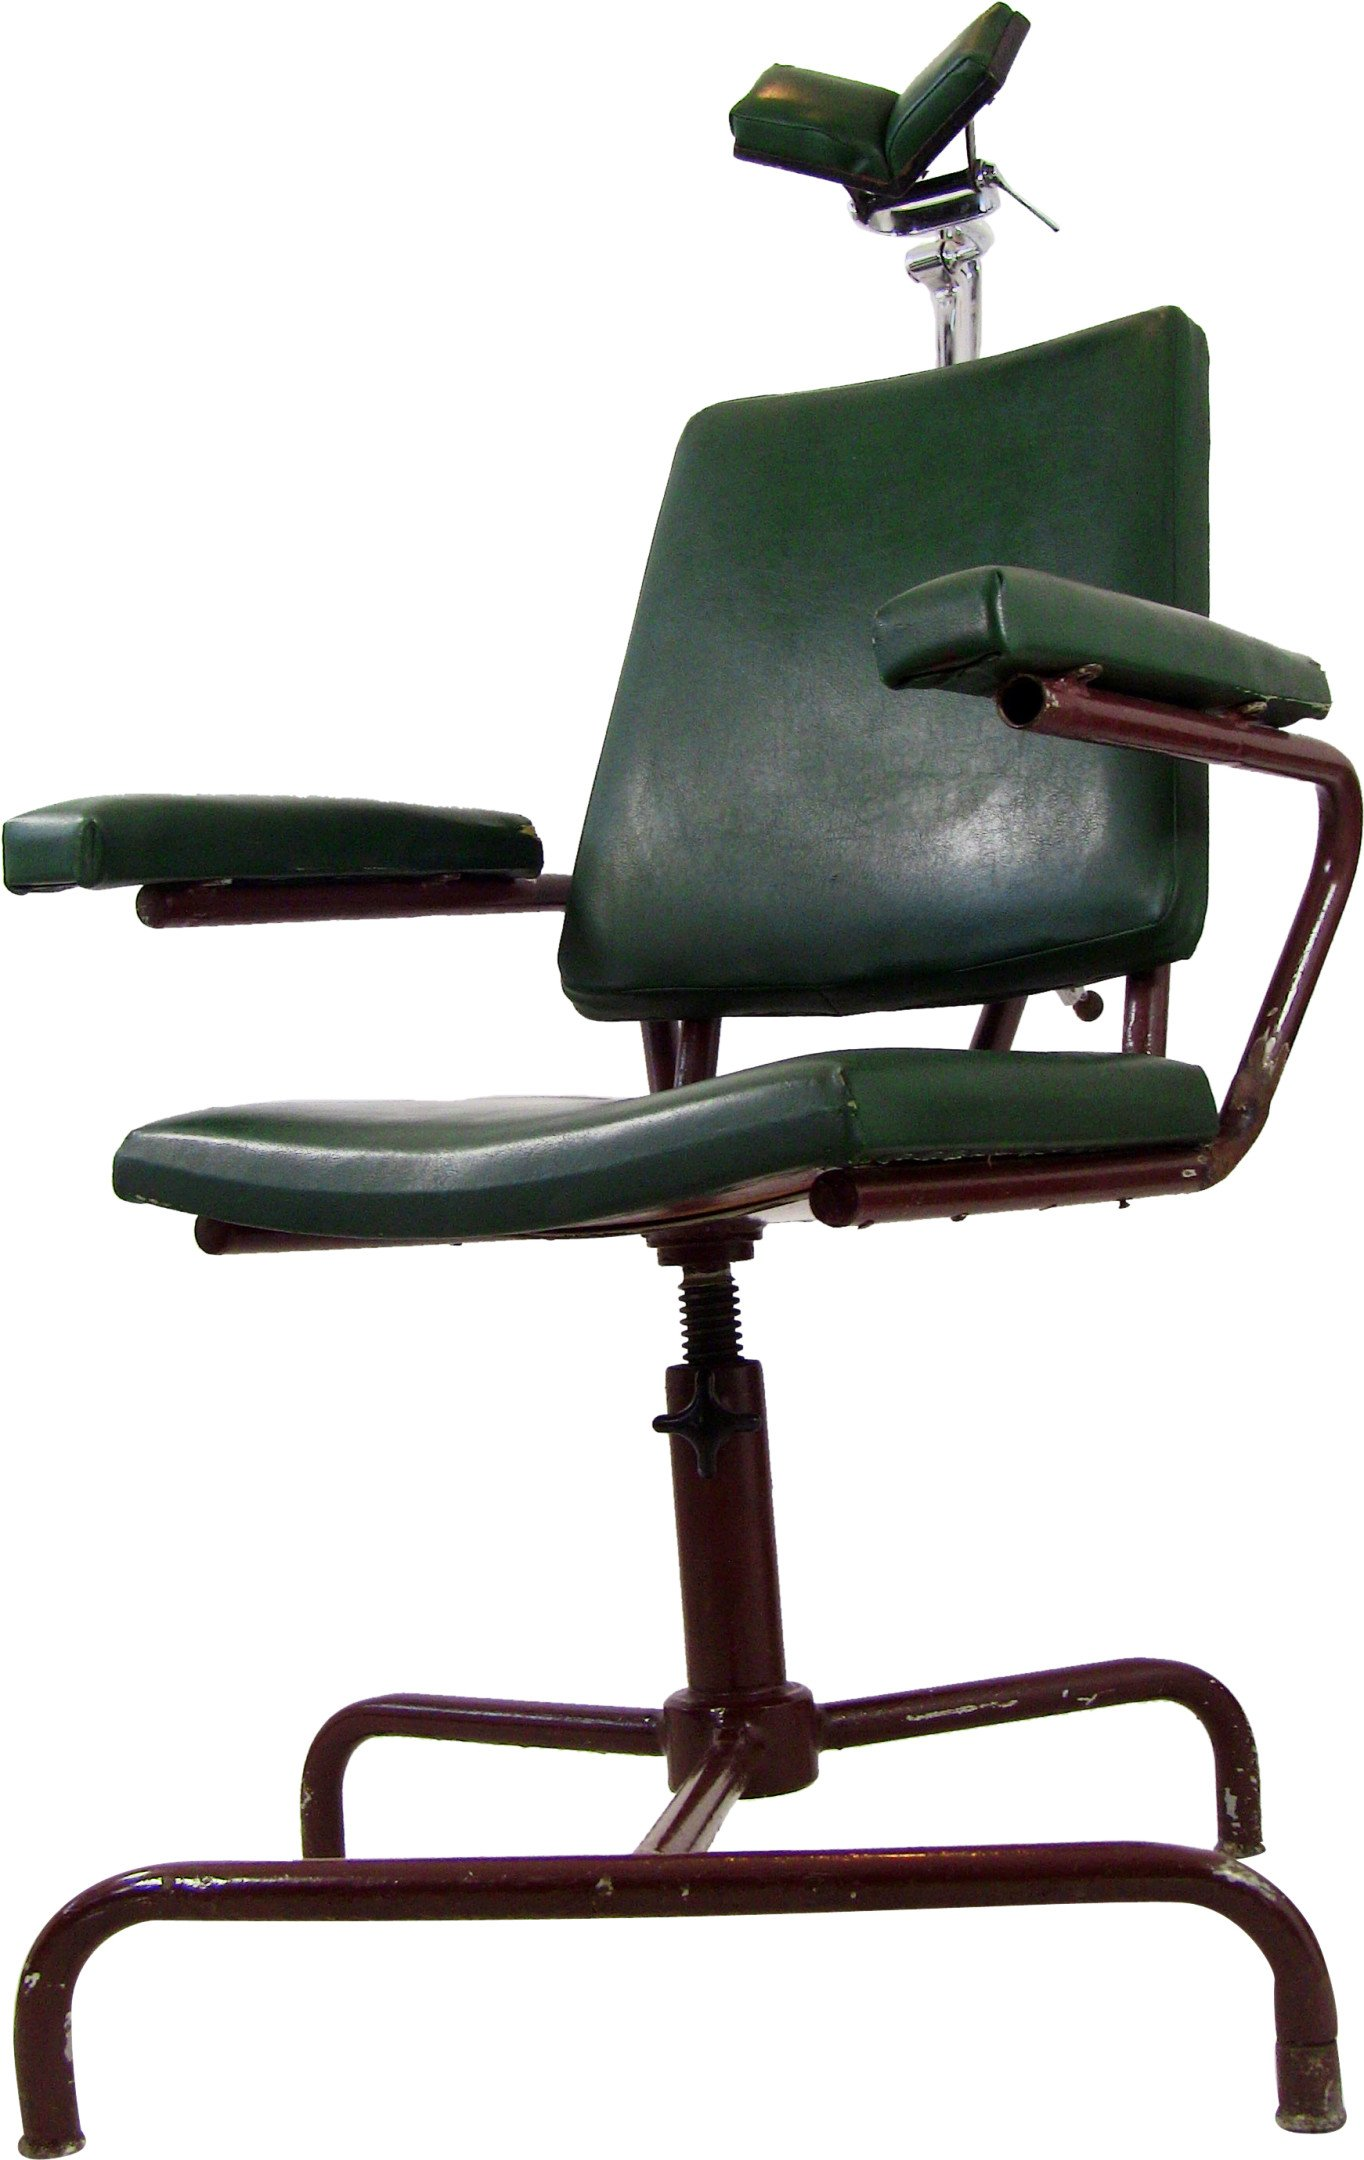 Chair, 1950s